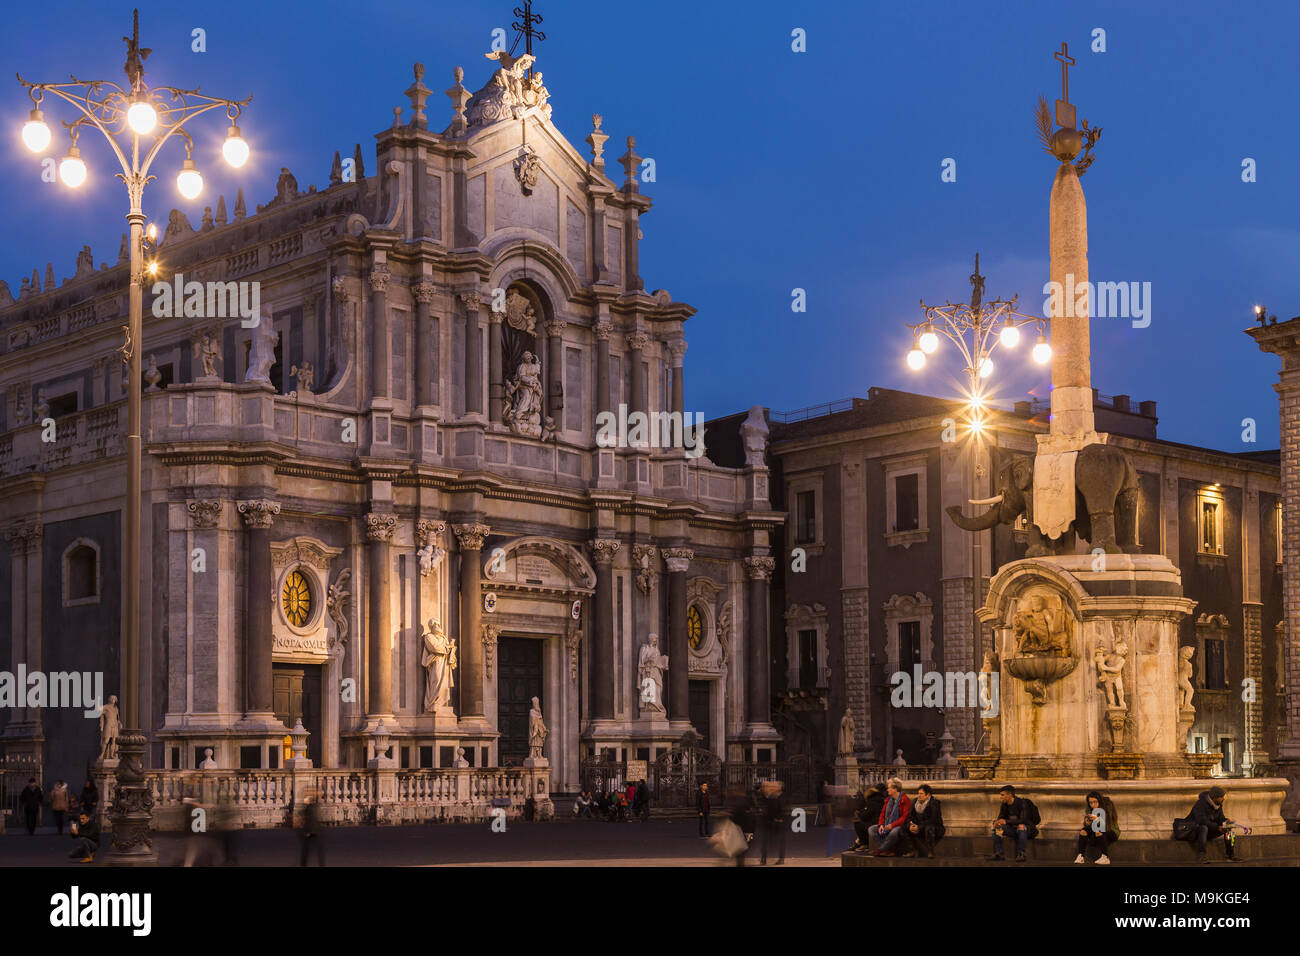 Piazza del Duomo square with the facade of the cathedral and the Elephant Fountain 'u Liotru', symbol of Catania, Sicily, Italy. - Stock Image